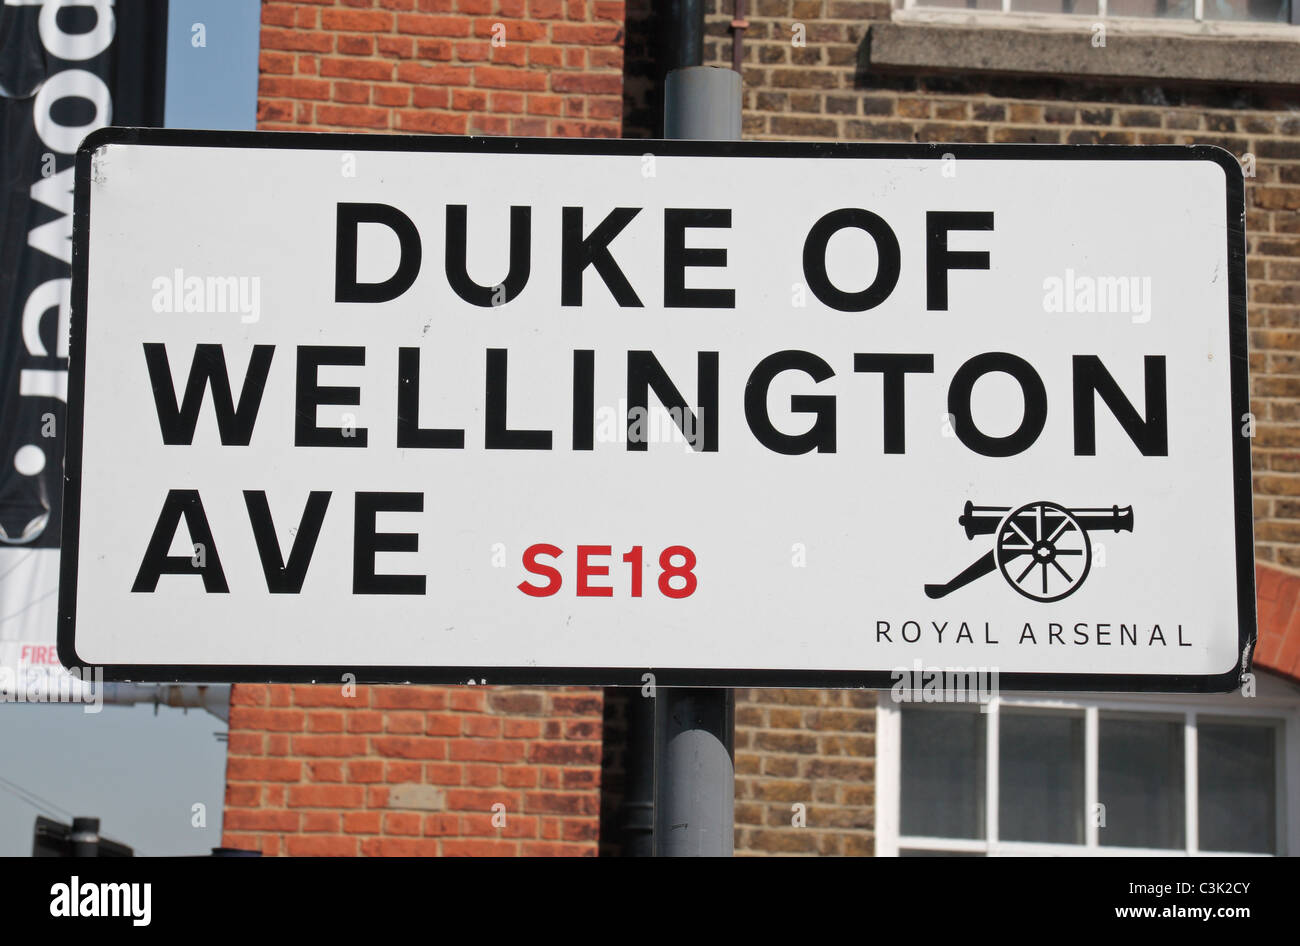 Road sign for 'Duke of Wellington Ave', Royal Arsenal, Woolwich, East London, UK. - Stock Image